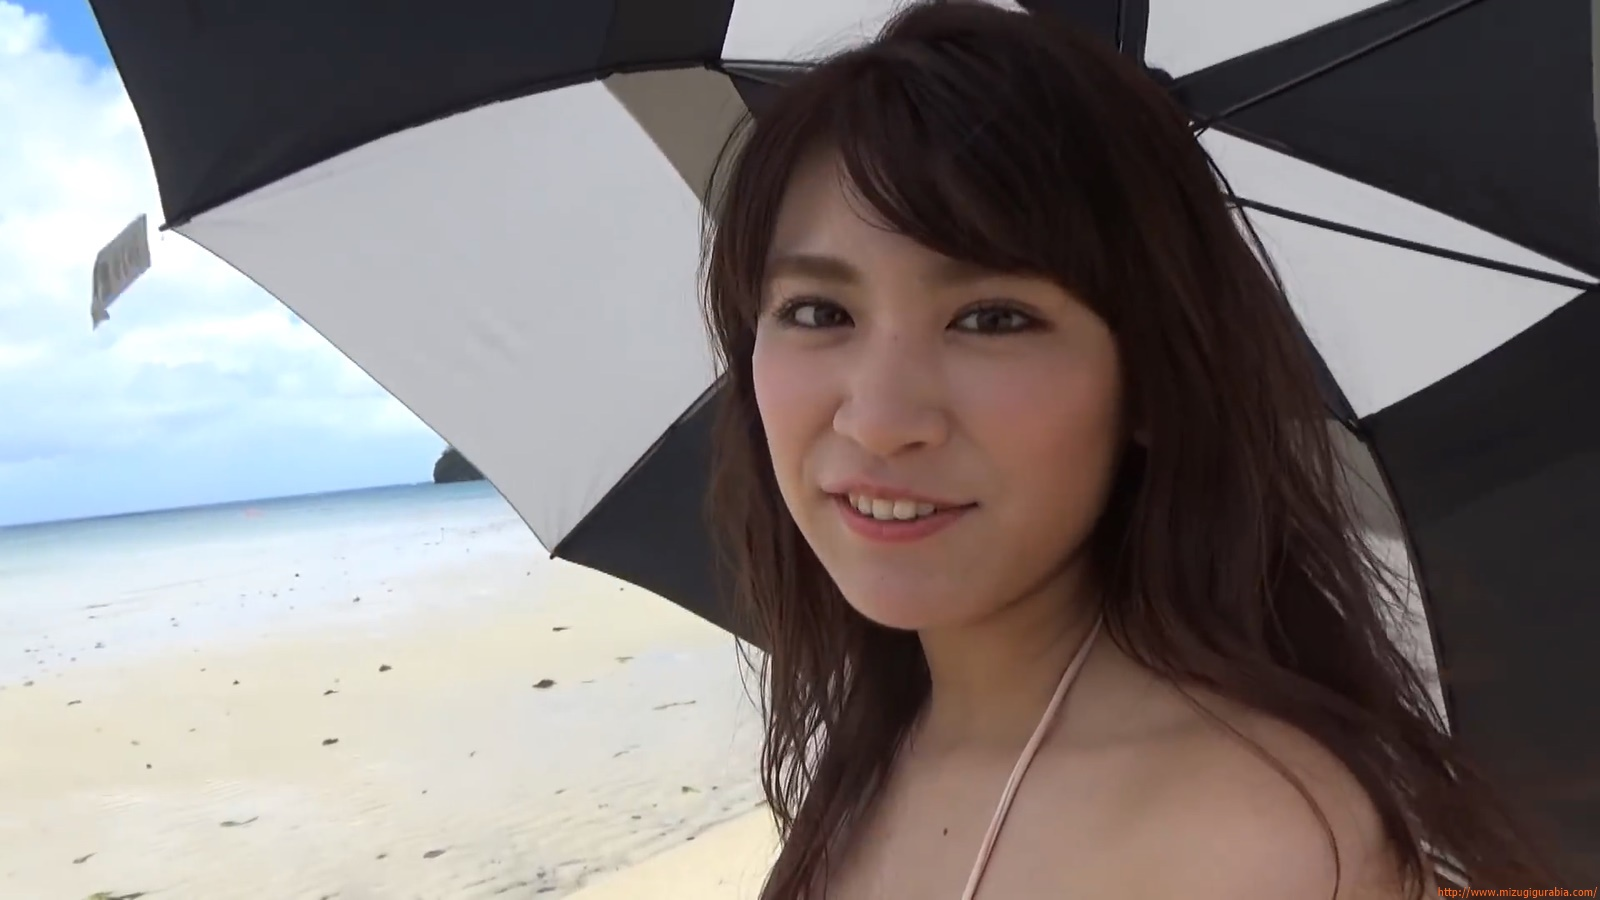 Shes a sunny bodice who continues to lead the way in gravure046